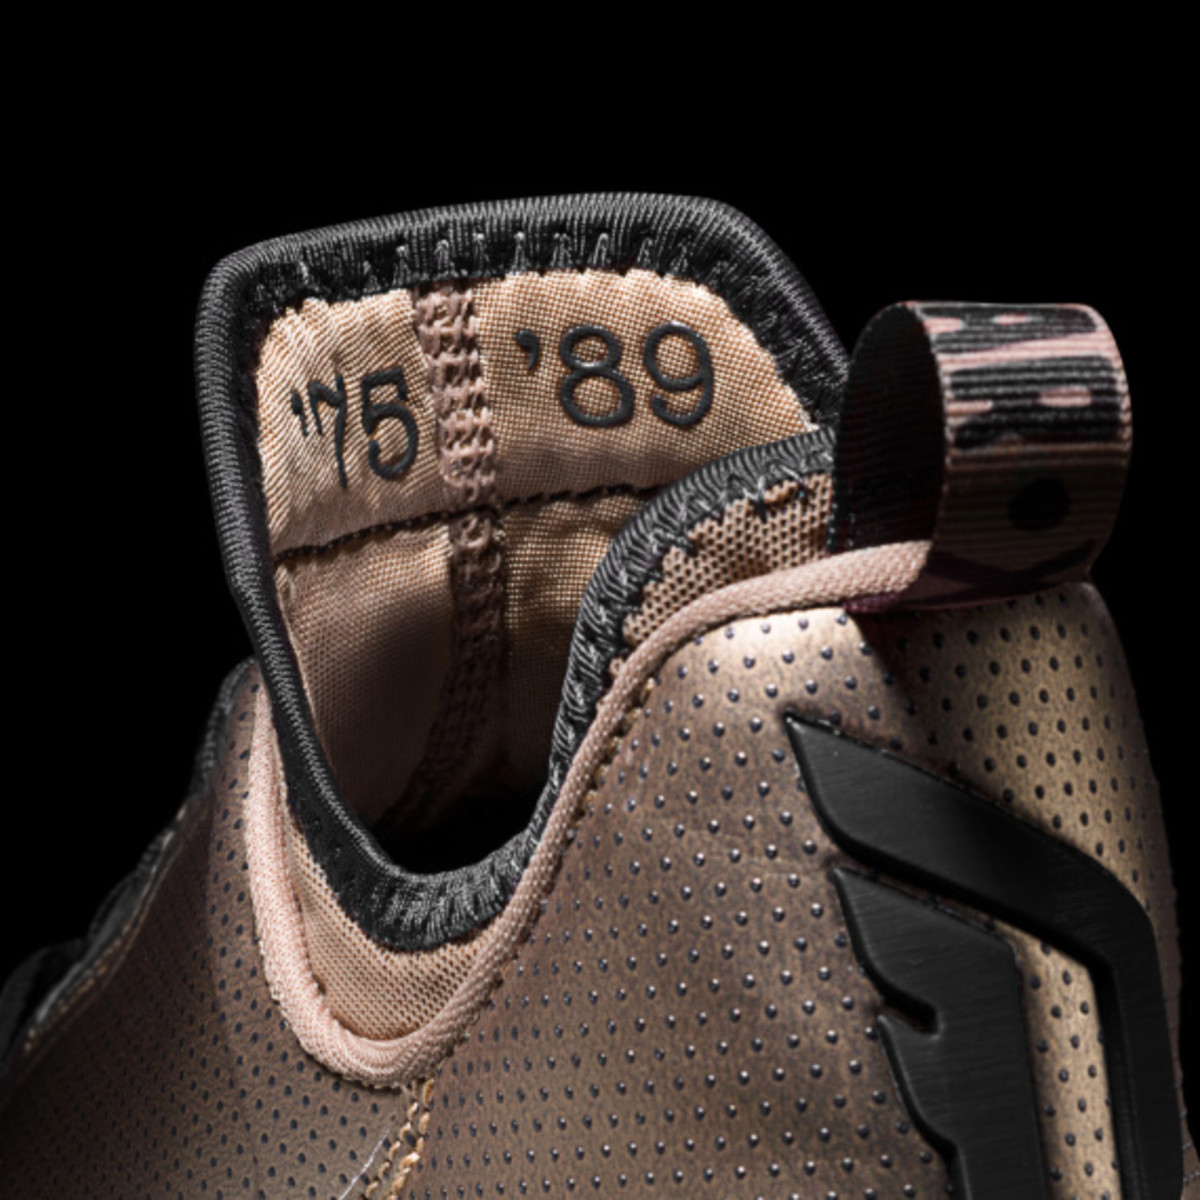 adidas-basketball-2015-black-history-month-collection-04